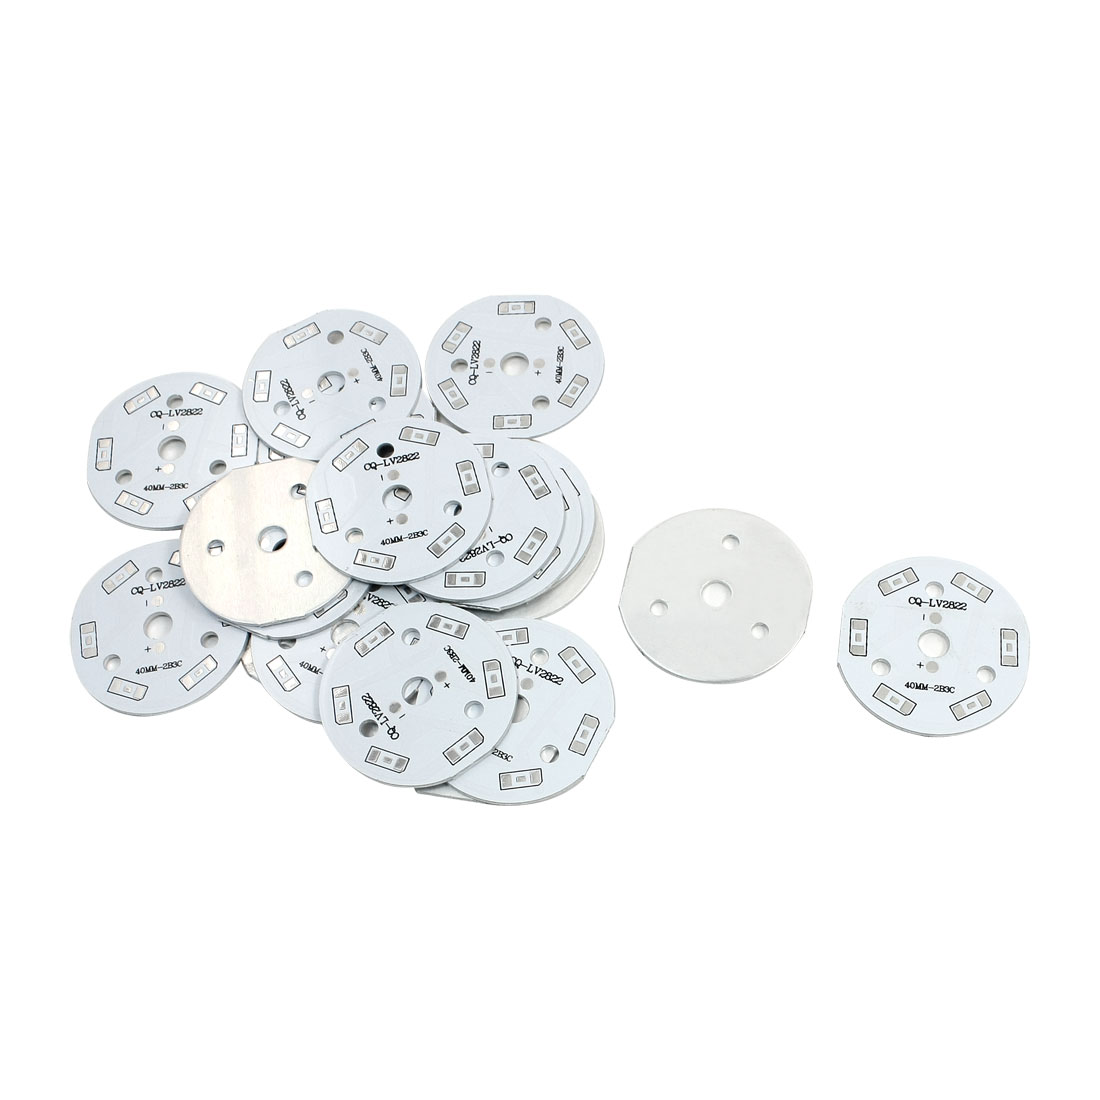 20Pcs 6 x 1/2W 5730 SMD LED High Power DIY Circle Aluminum PCB Circuit Board 40mm Diameter